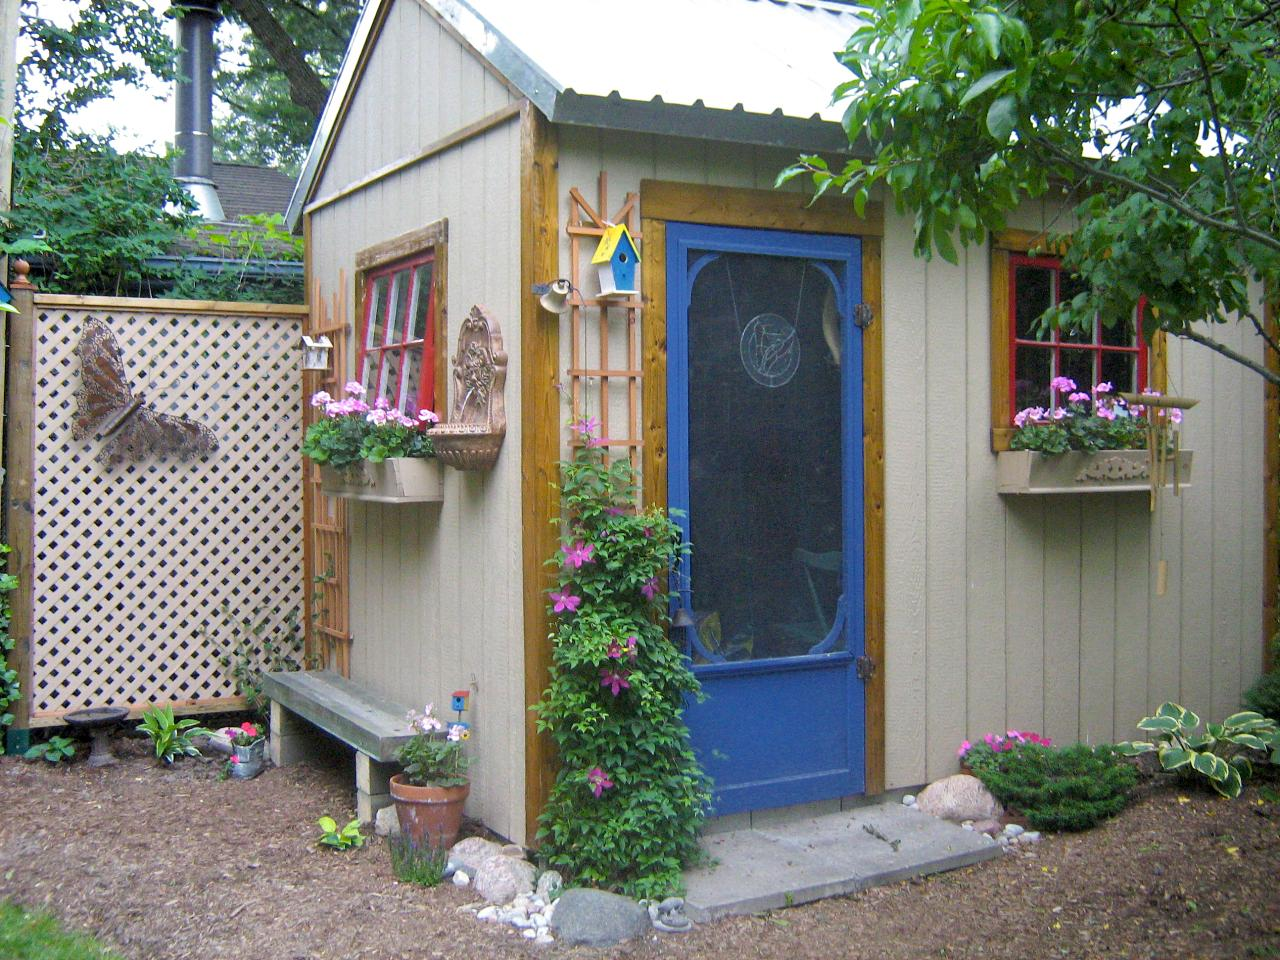 Maximum value outdoor structure projects shed hgtv for Outdoor garden shed